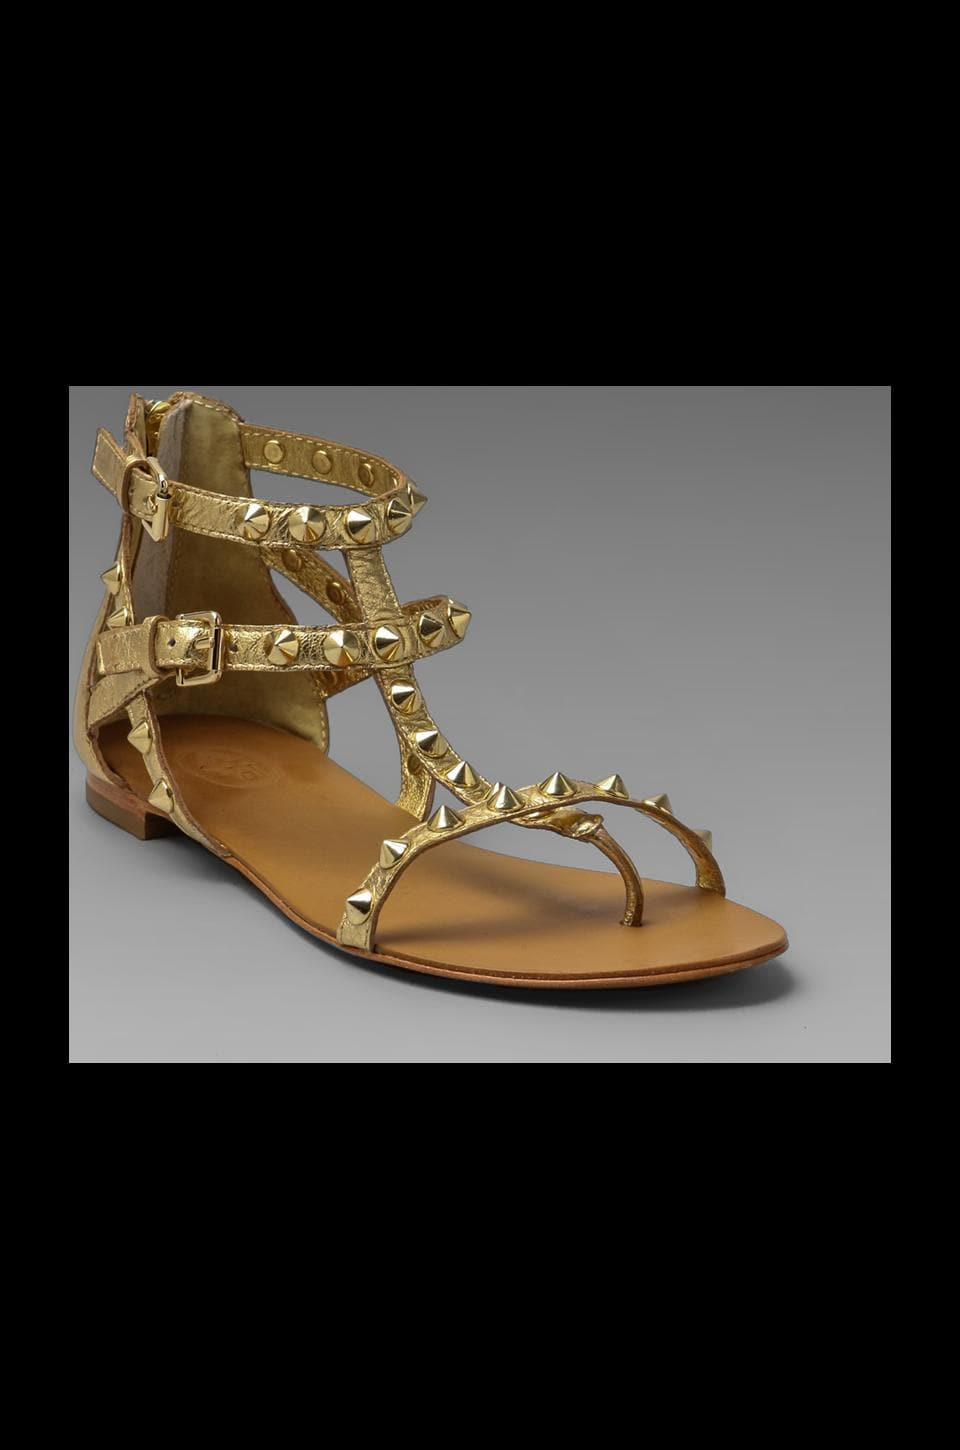 Ash Malibu Sandal in Gold